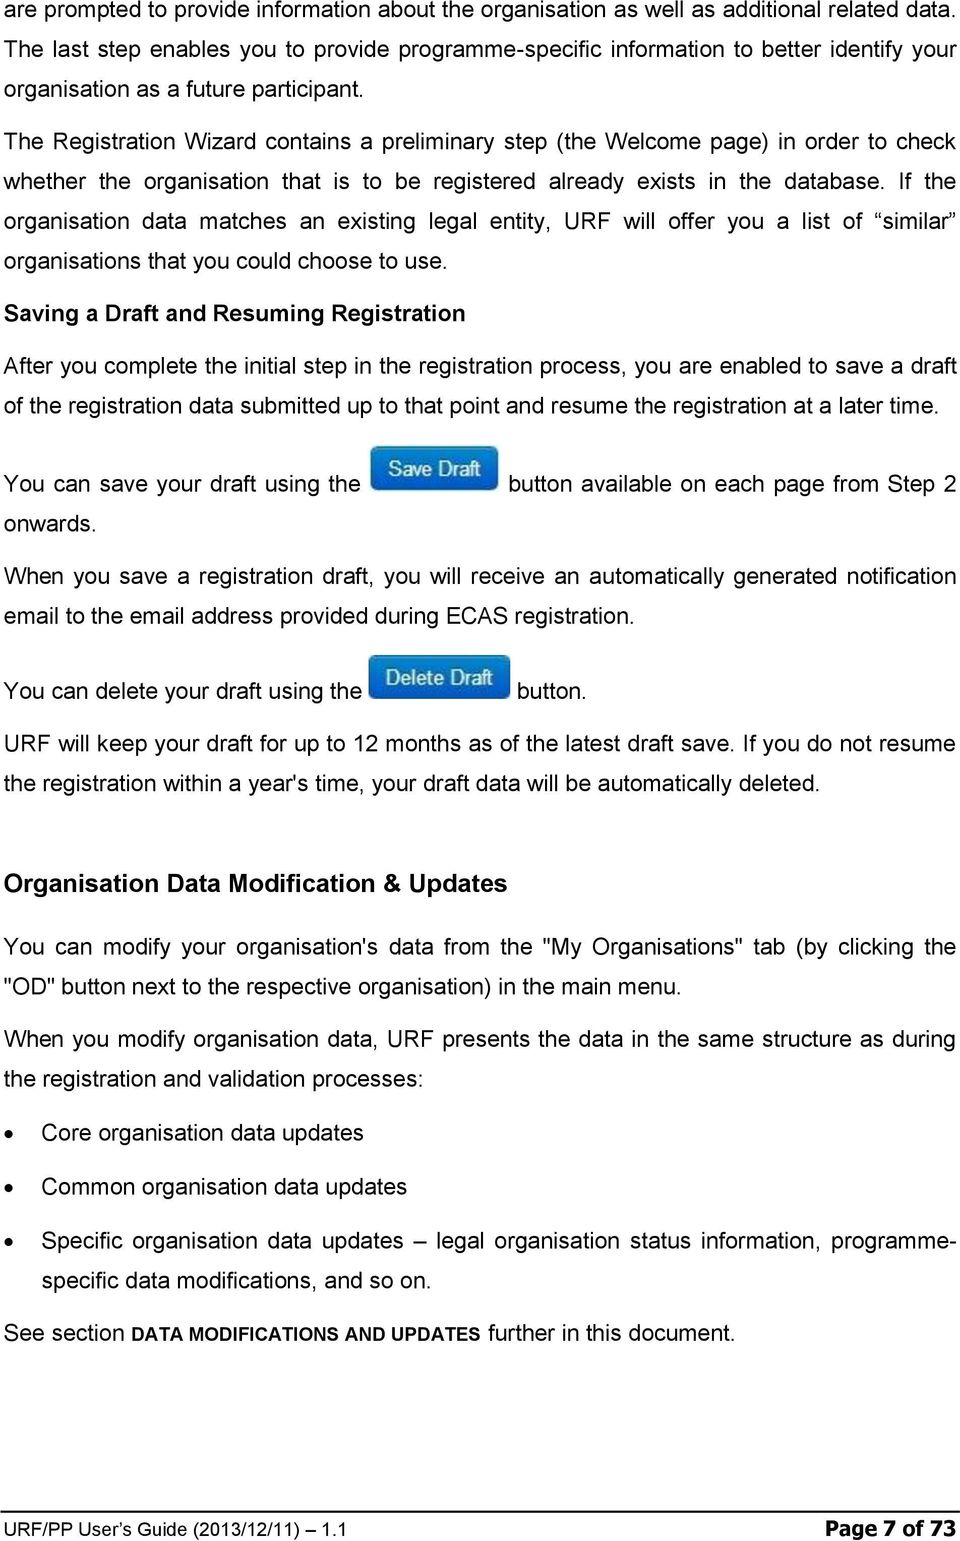 The Registration Wizard contains a preliminary step (the Welcome page) in order to check whether the organisation that is to be registered already exists in the database.